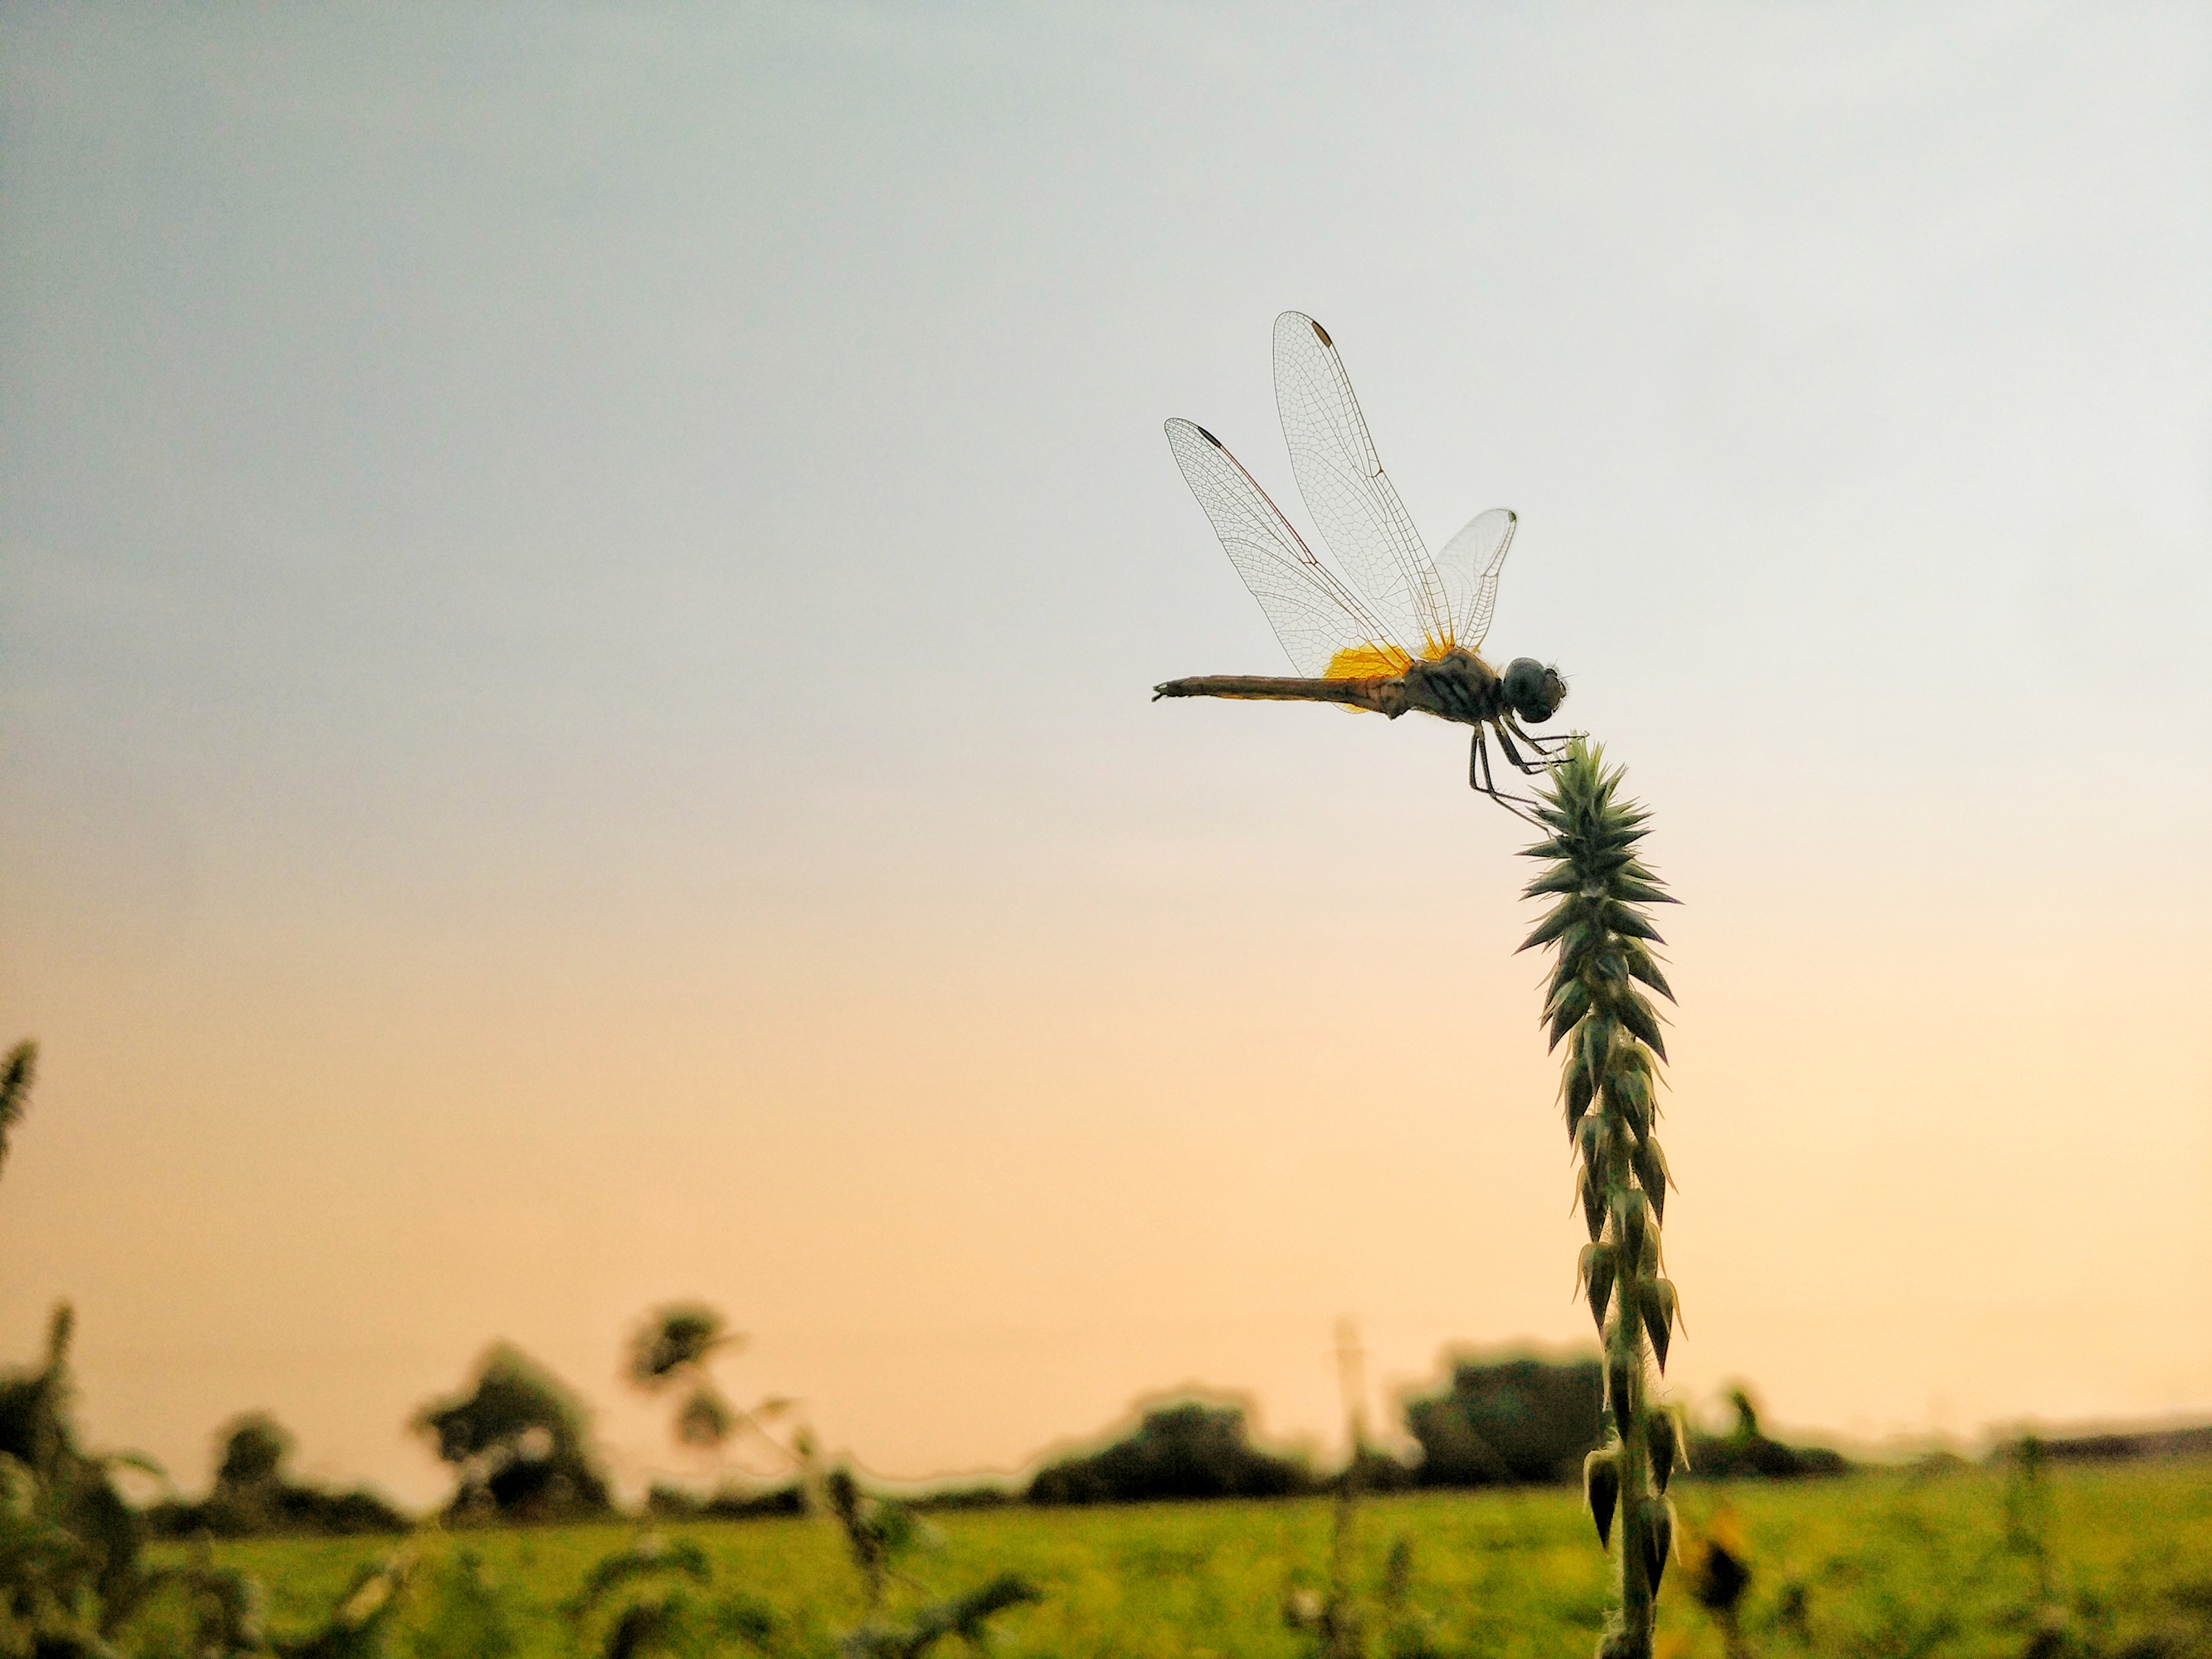 Meteorologists Stumble Upon Massive Swarms of Dragonflies Heading South for the Winter